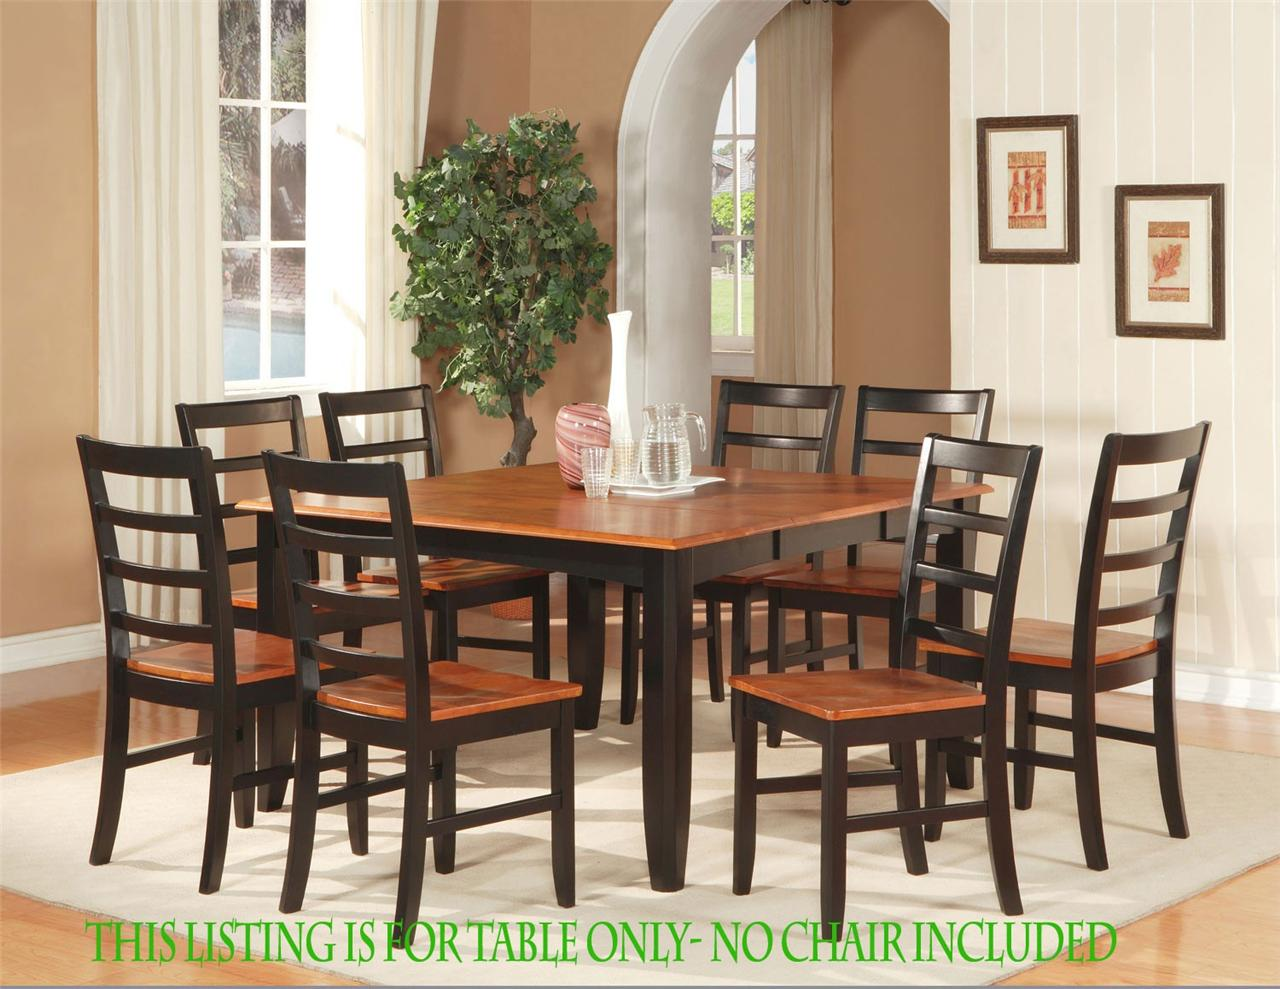 54 square dinette kitchen dining room table with 18 foldable leaf no chair ebay. Black Bedroom Furniture Sets. Home Design Ideas